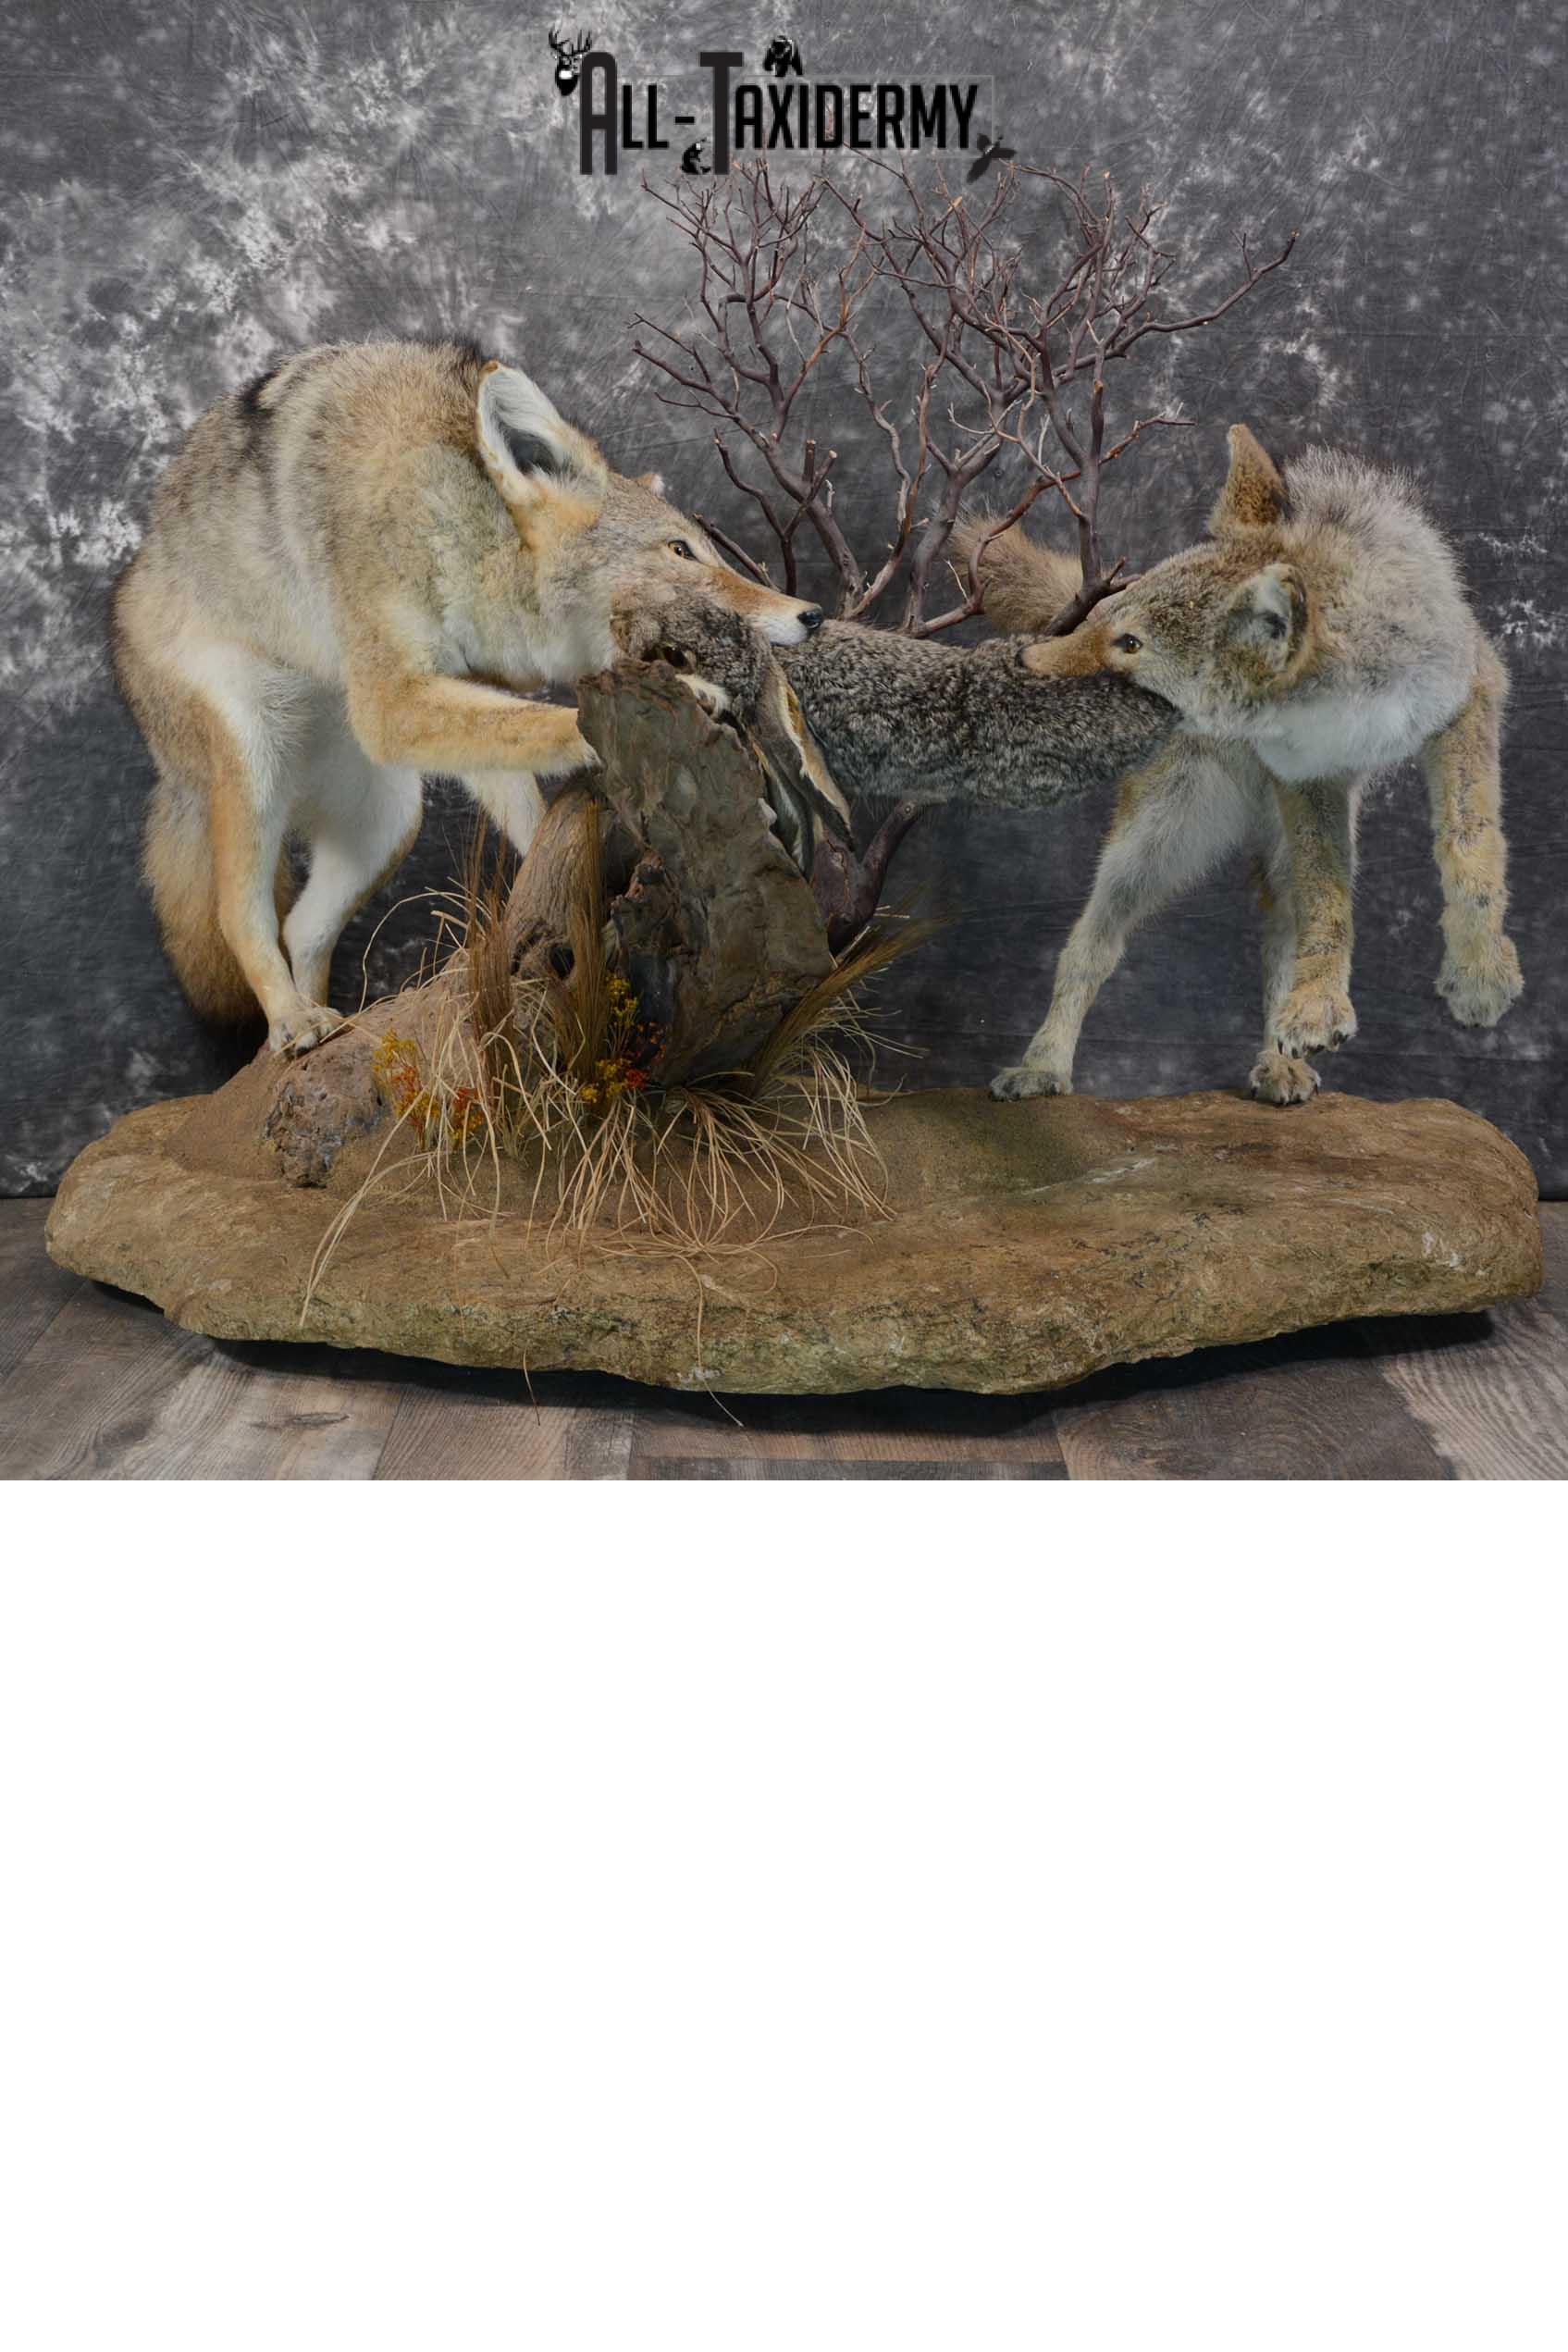 2 Full body coyotes with rabbit taxidermy mount SKU 1659